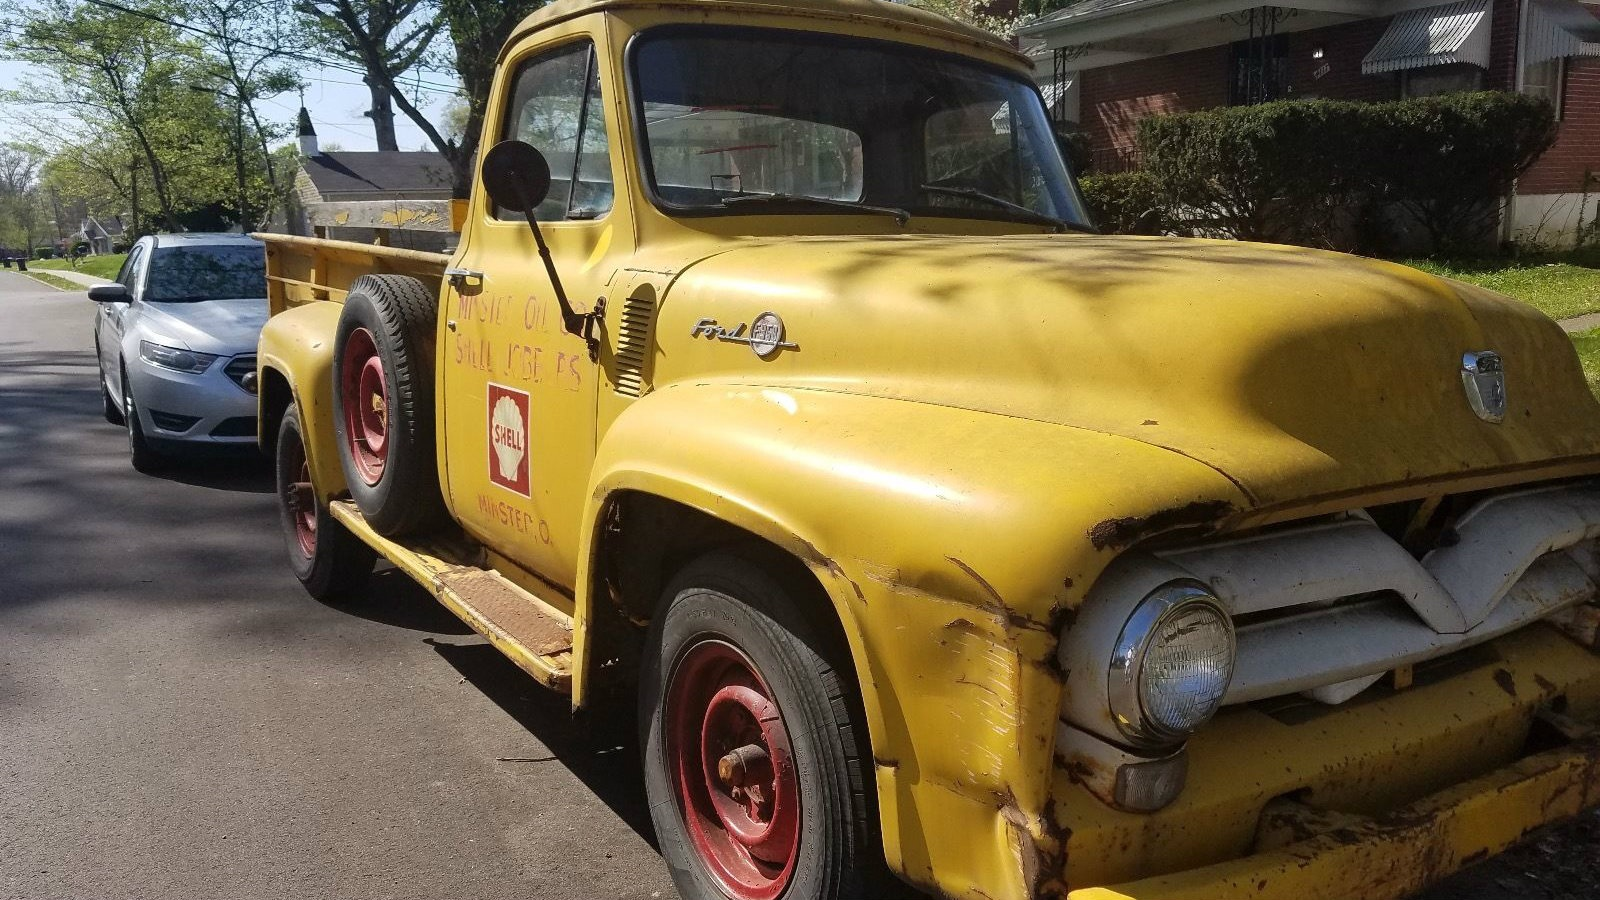 Dont Paint It 1955 Ford F350 F100 History Although Wears The Livery Of An Oil Company In Minster Ohio Truck Is Currently Located Louisville Kentucky Waiting For Me You To Buy